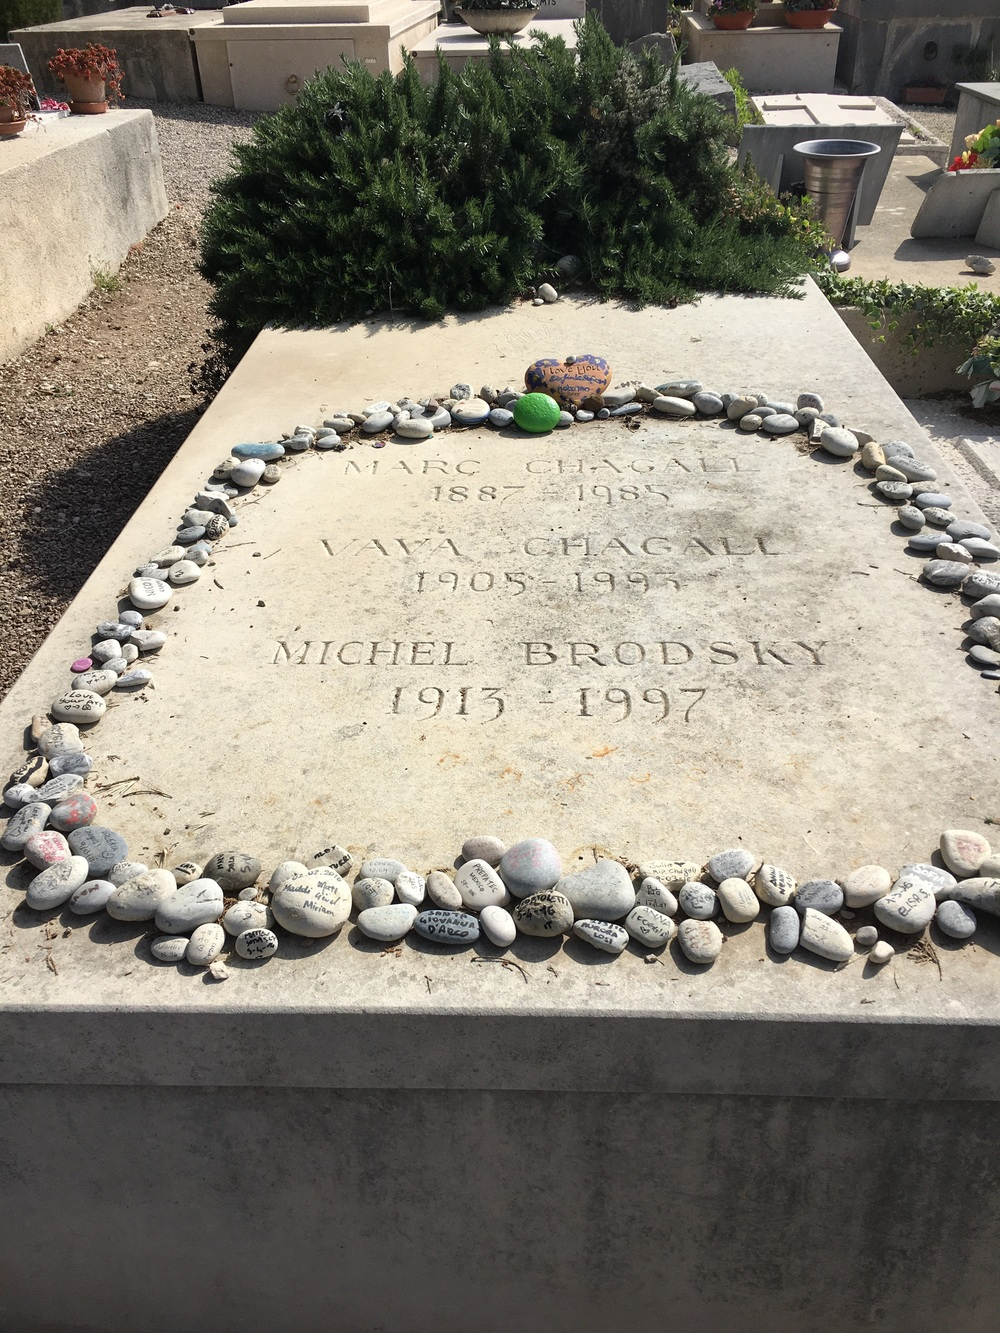 People leave stones with inscriptions on the grave, a Jewish tradition